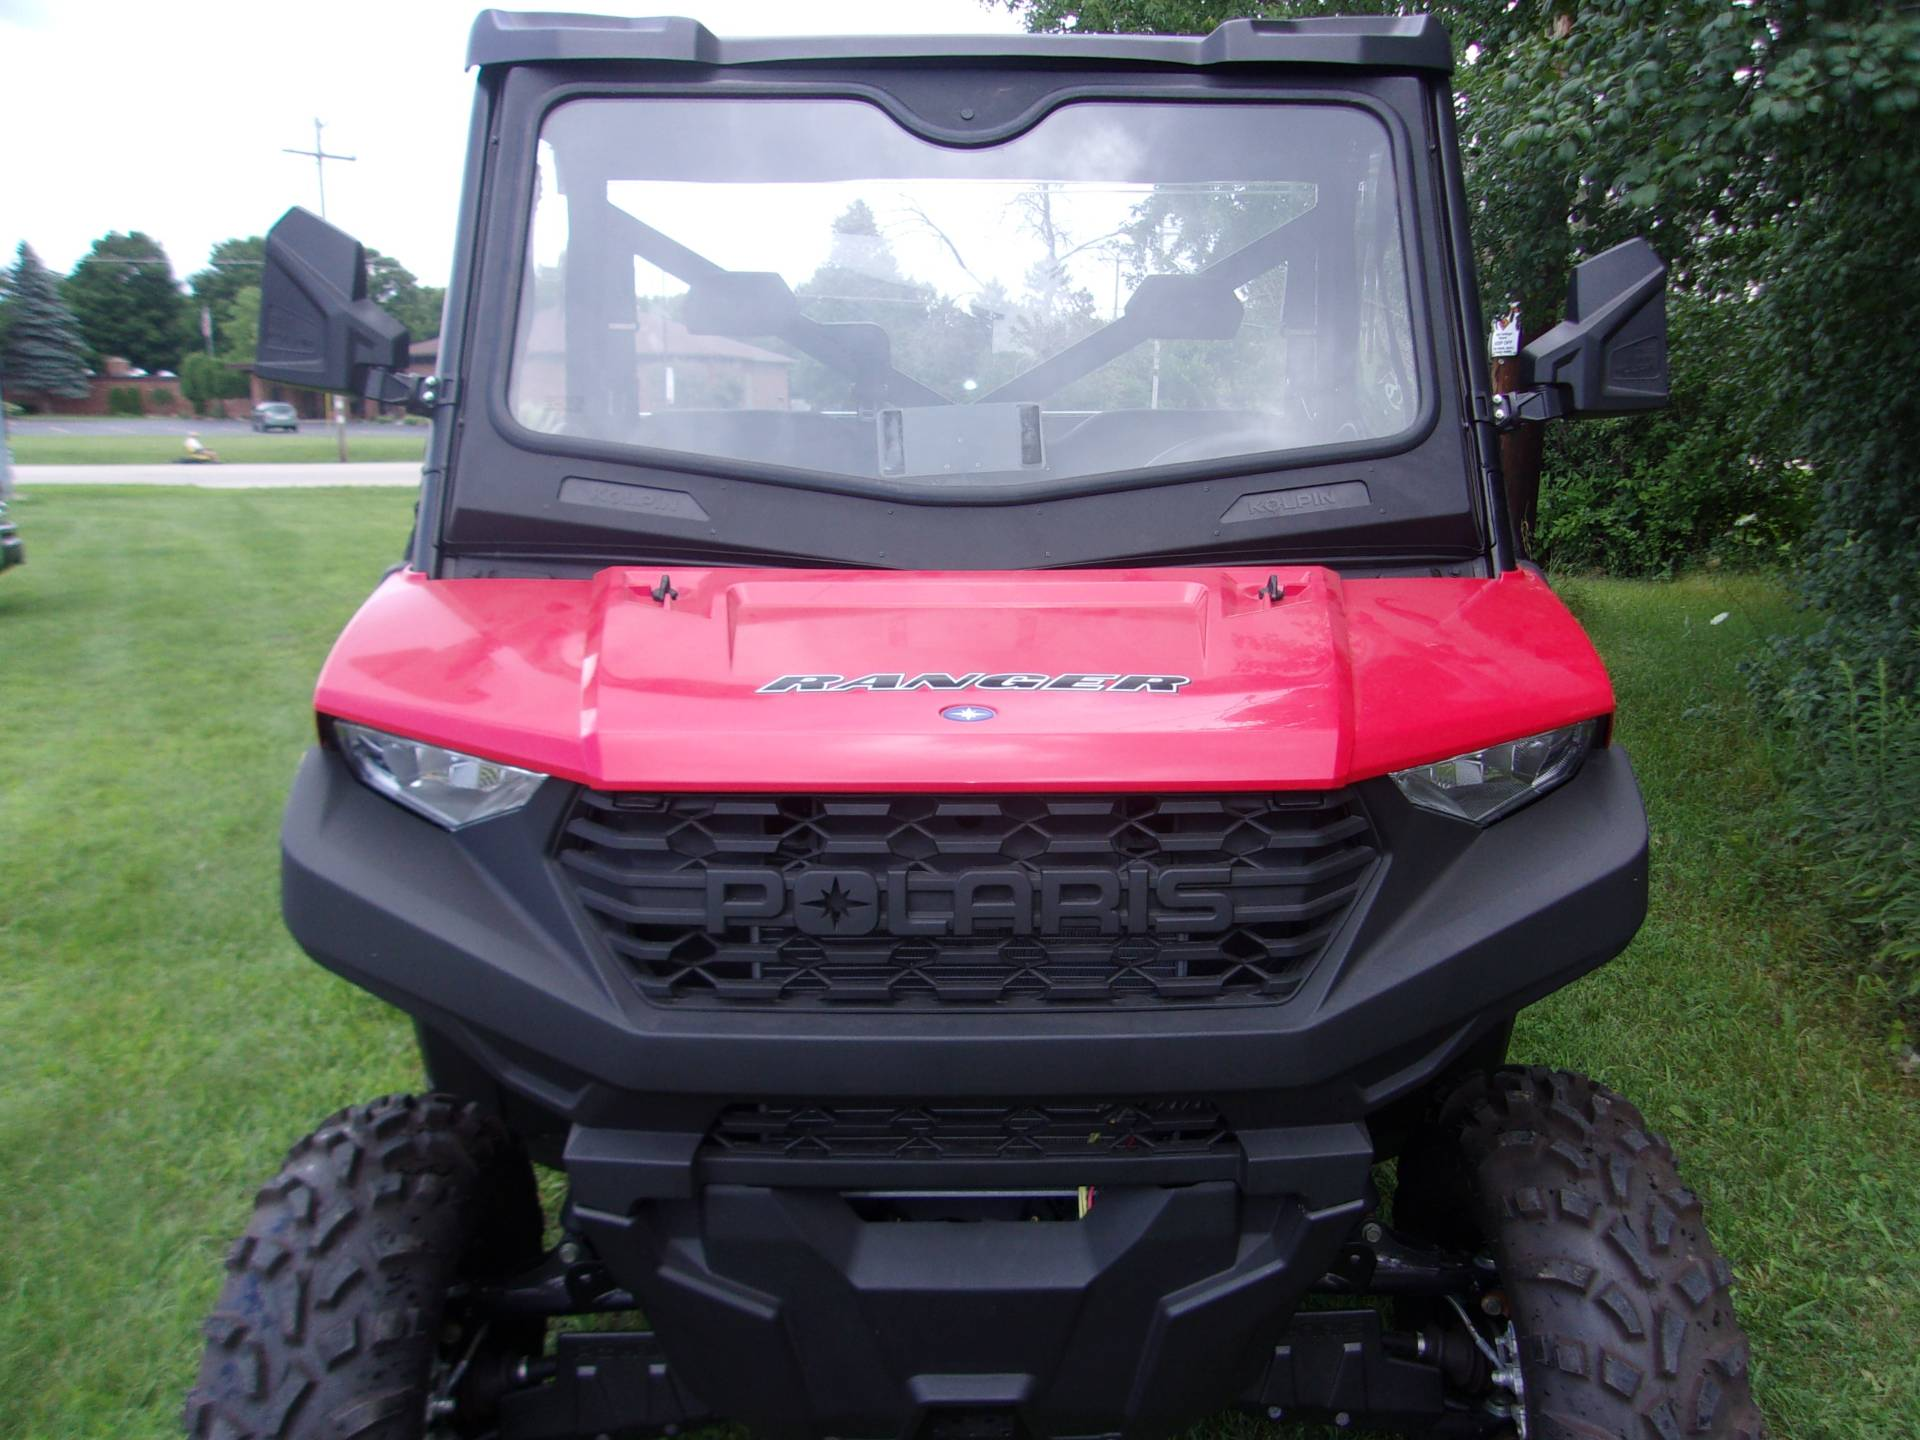 2020 Polaris Ranger 1000 in Mukwonago, Wisconsin - Photo 6